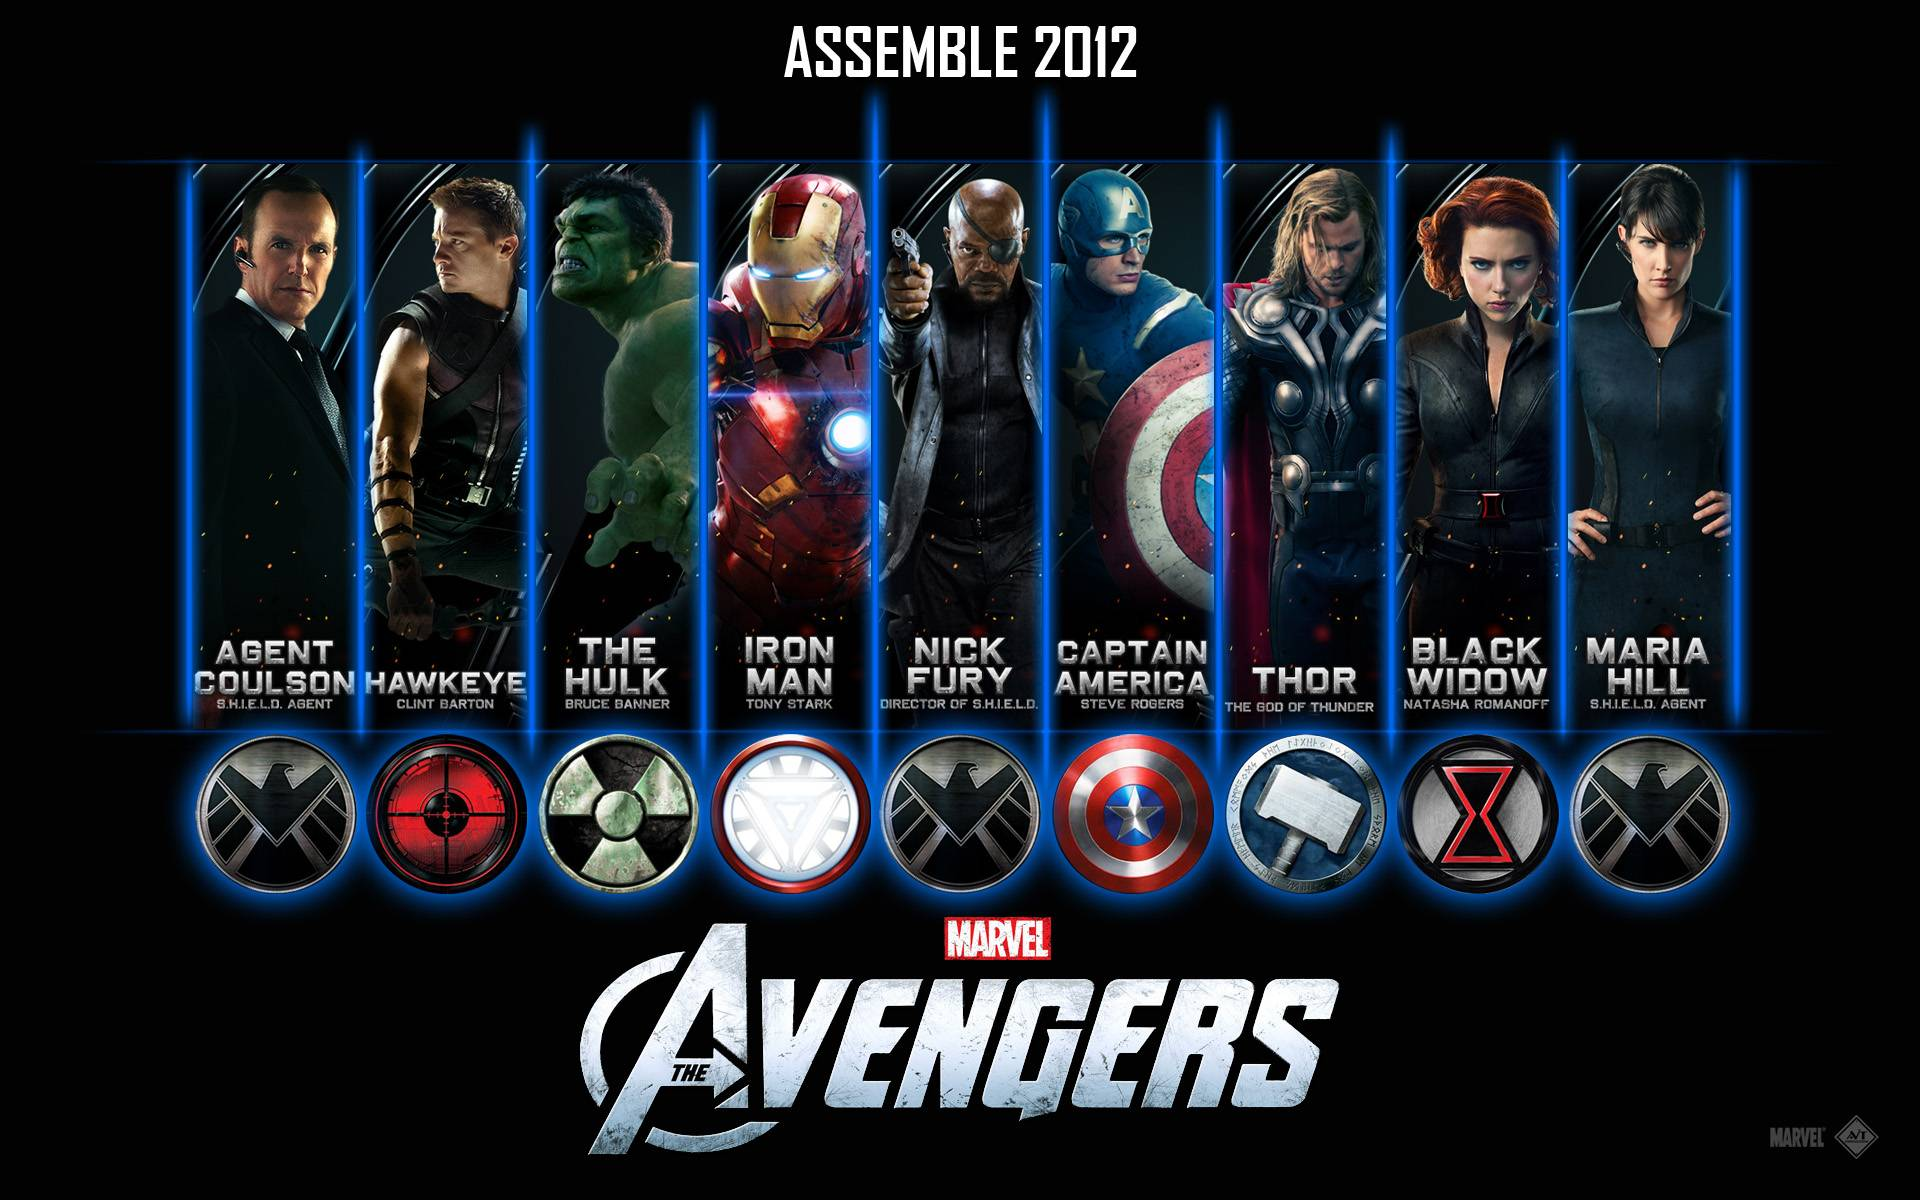 the avengers wallpaper Your Geeky Wallpapers 1920x1200